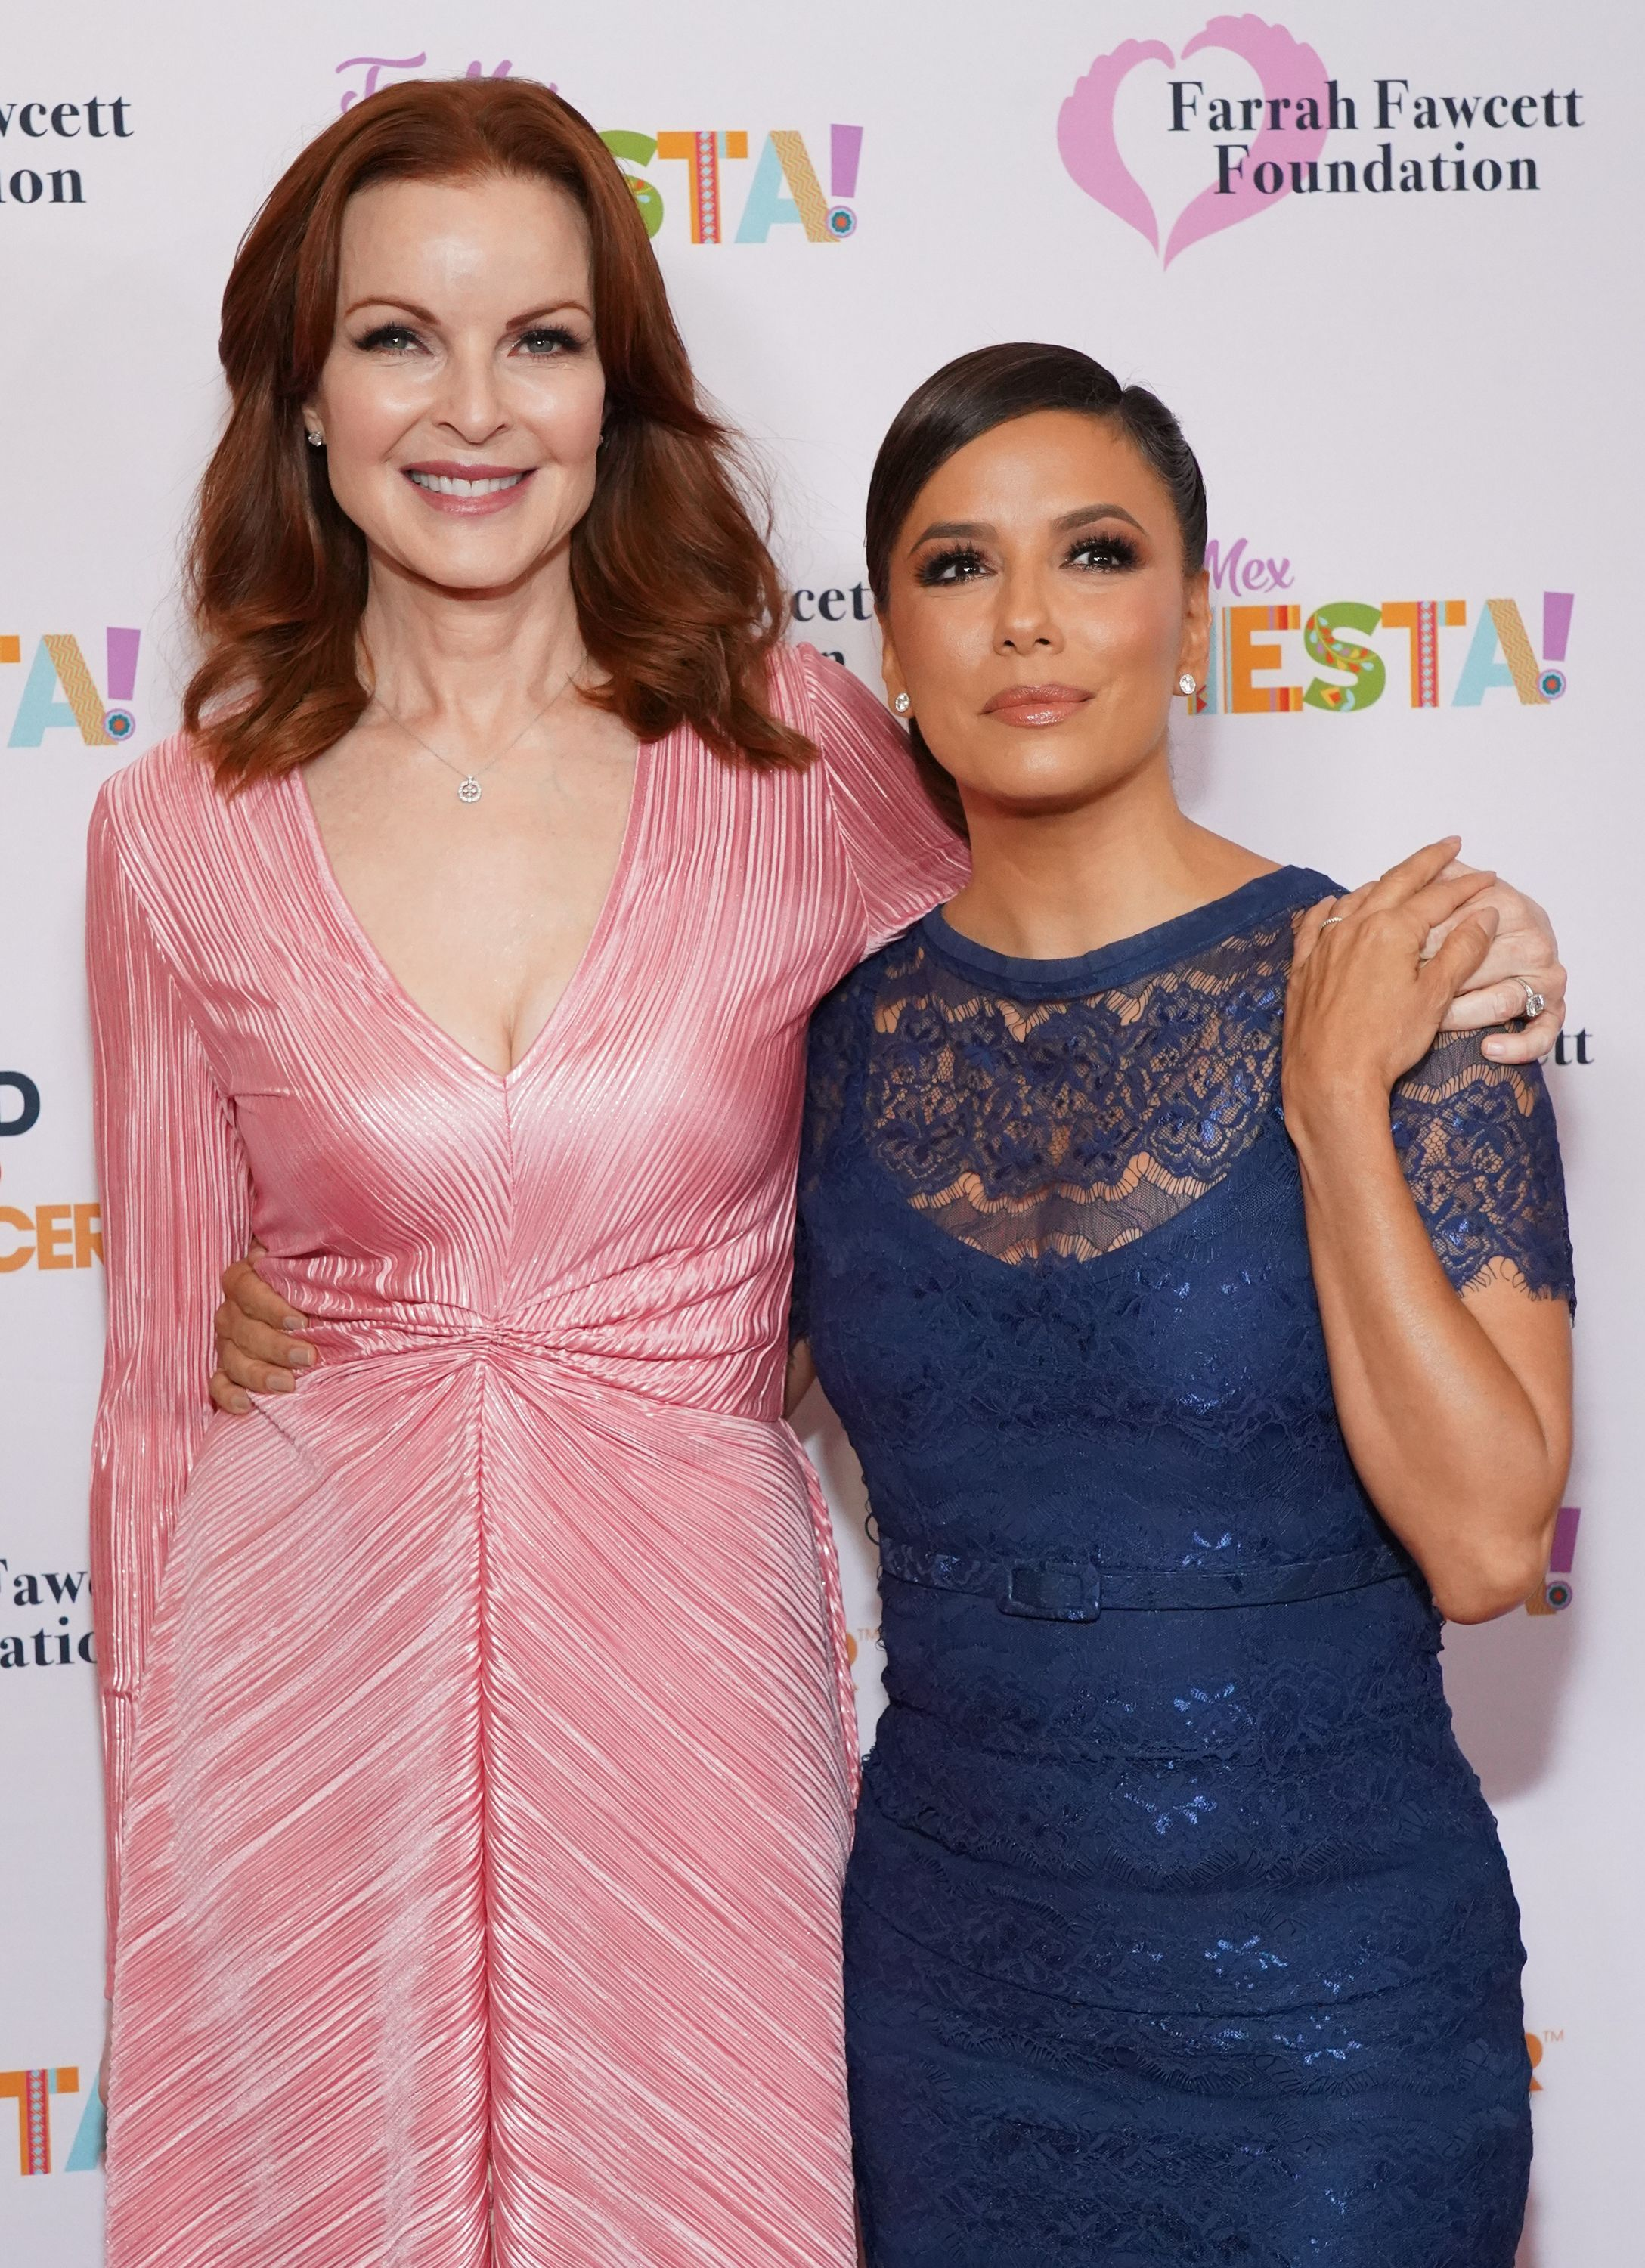 Marcia Cross and Eva Longoria attend the Farrah Fawcett Foundation's Tex-Mex Fiesta at Wallis Annenberg Center for the Performing Arts on September 06, 2019 in Beverly Hills, California. | Source: Getty Images